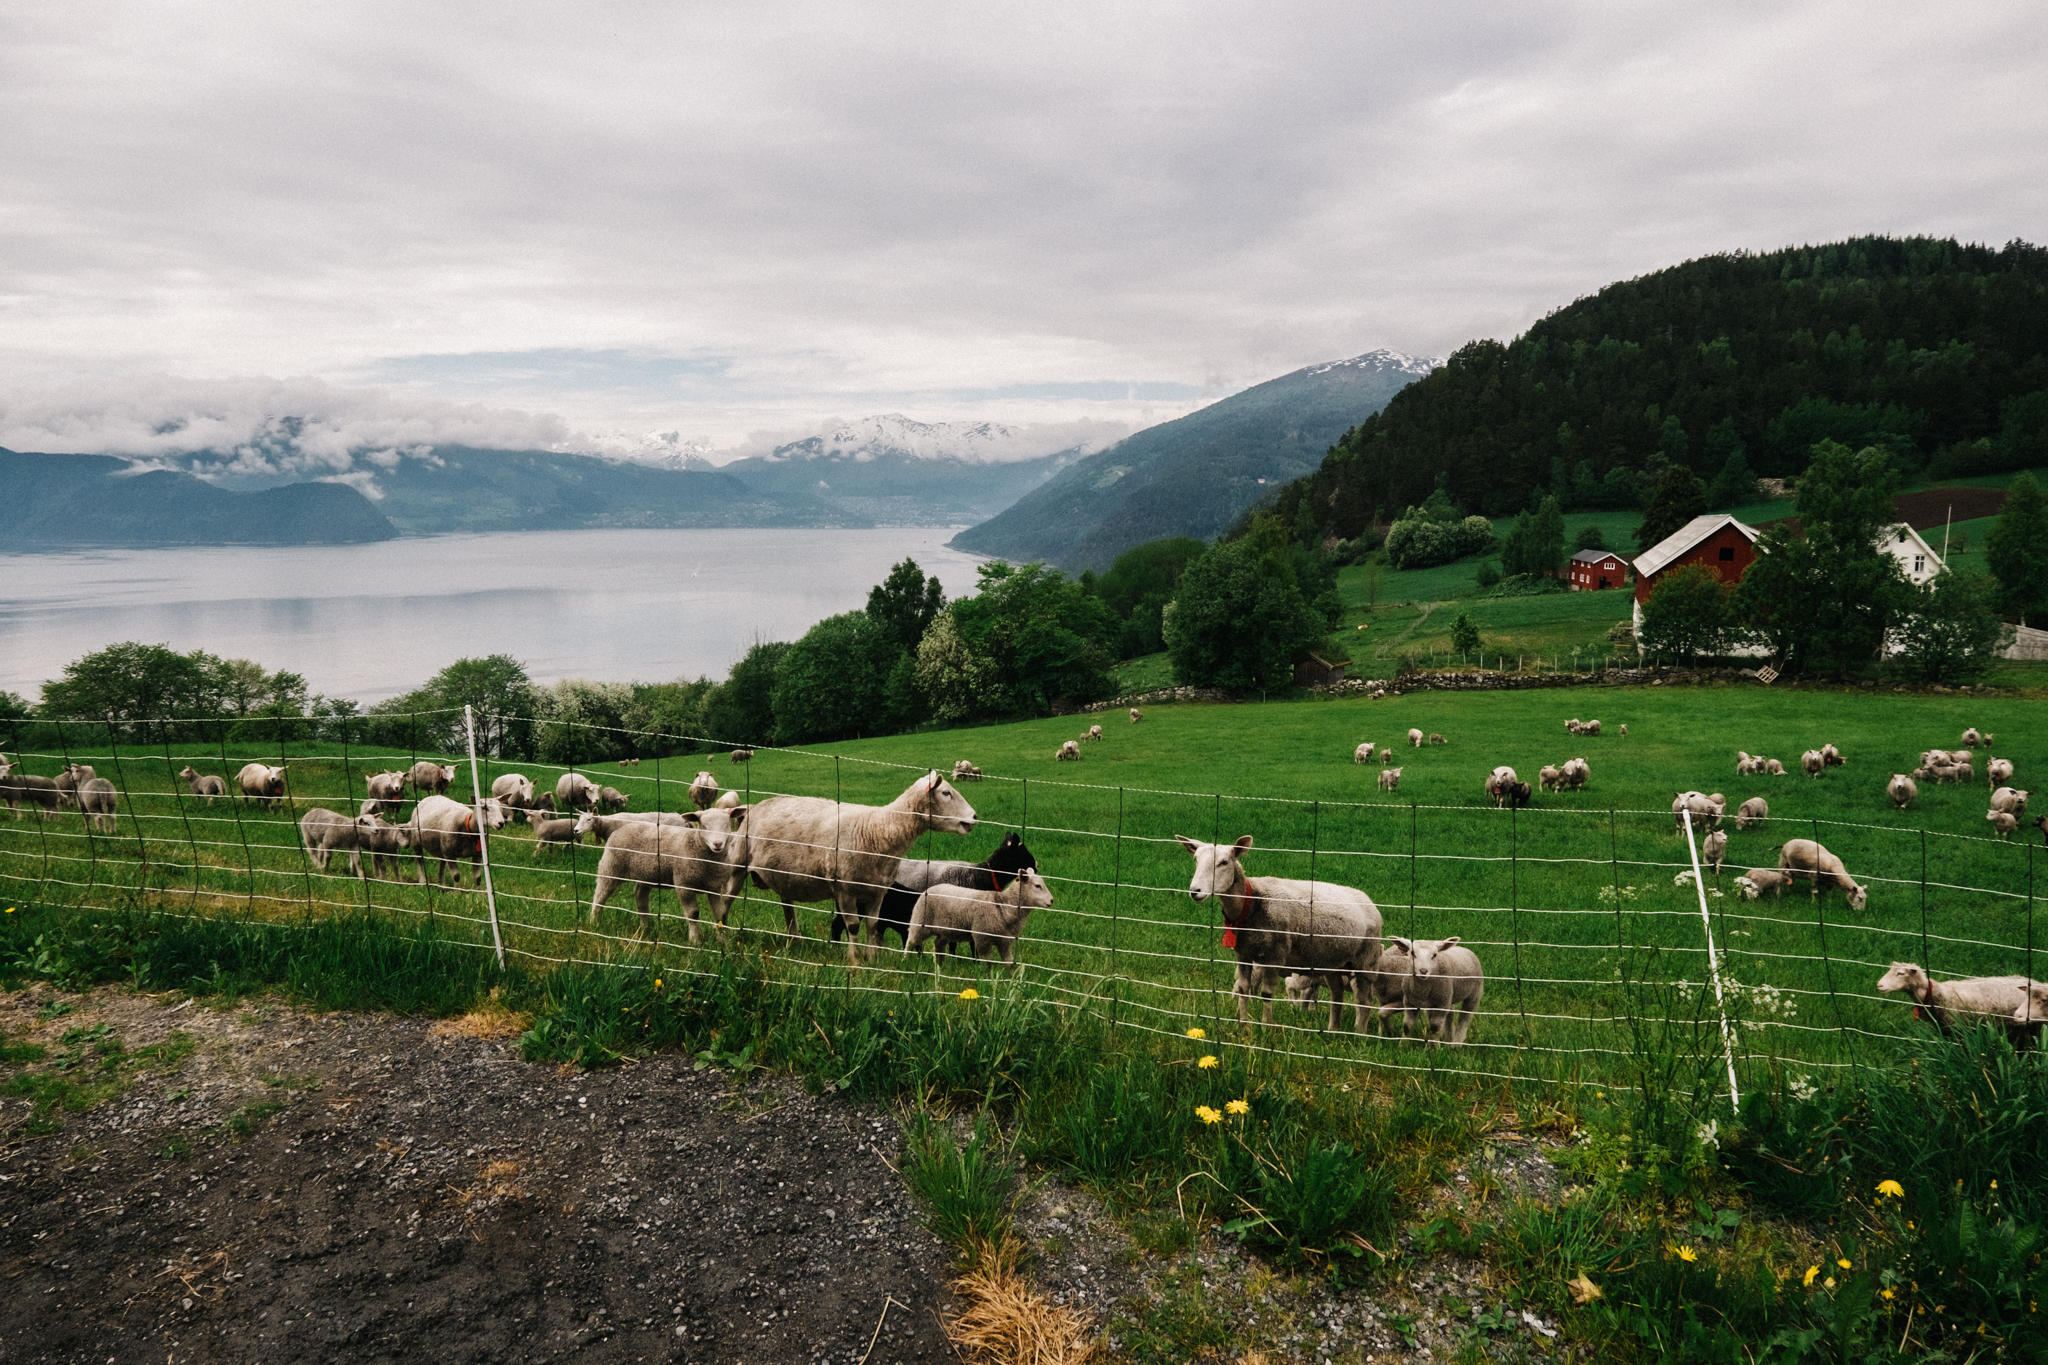 Sheep in Norway. Photo by David Leøng